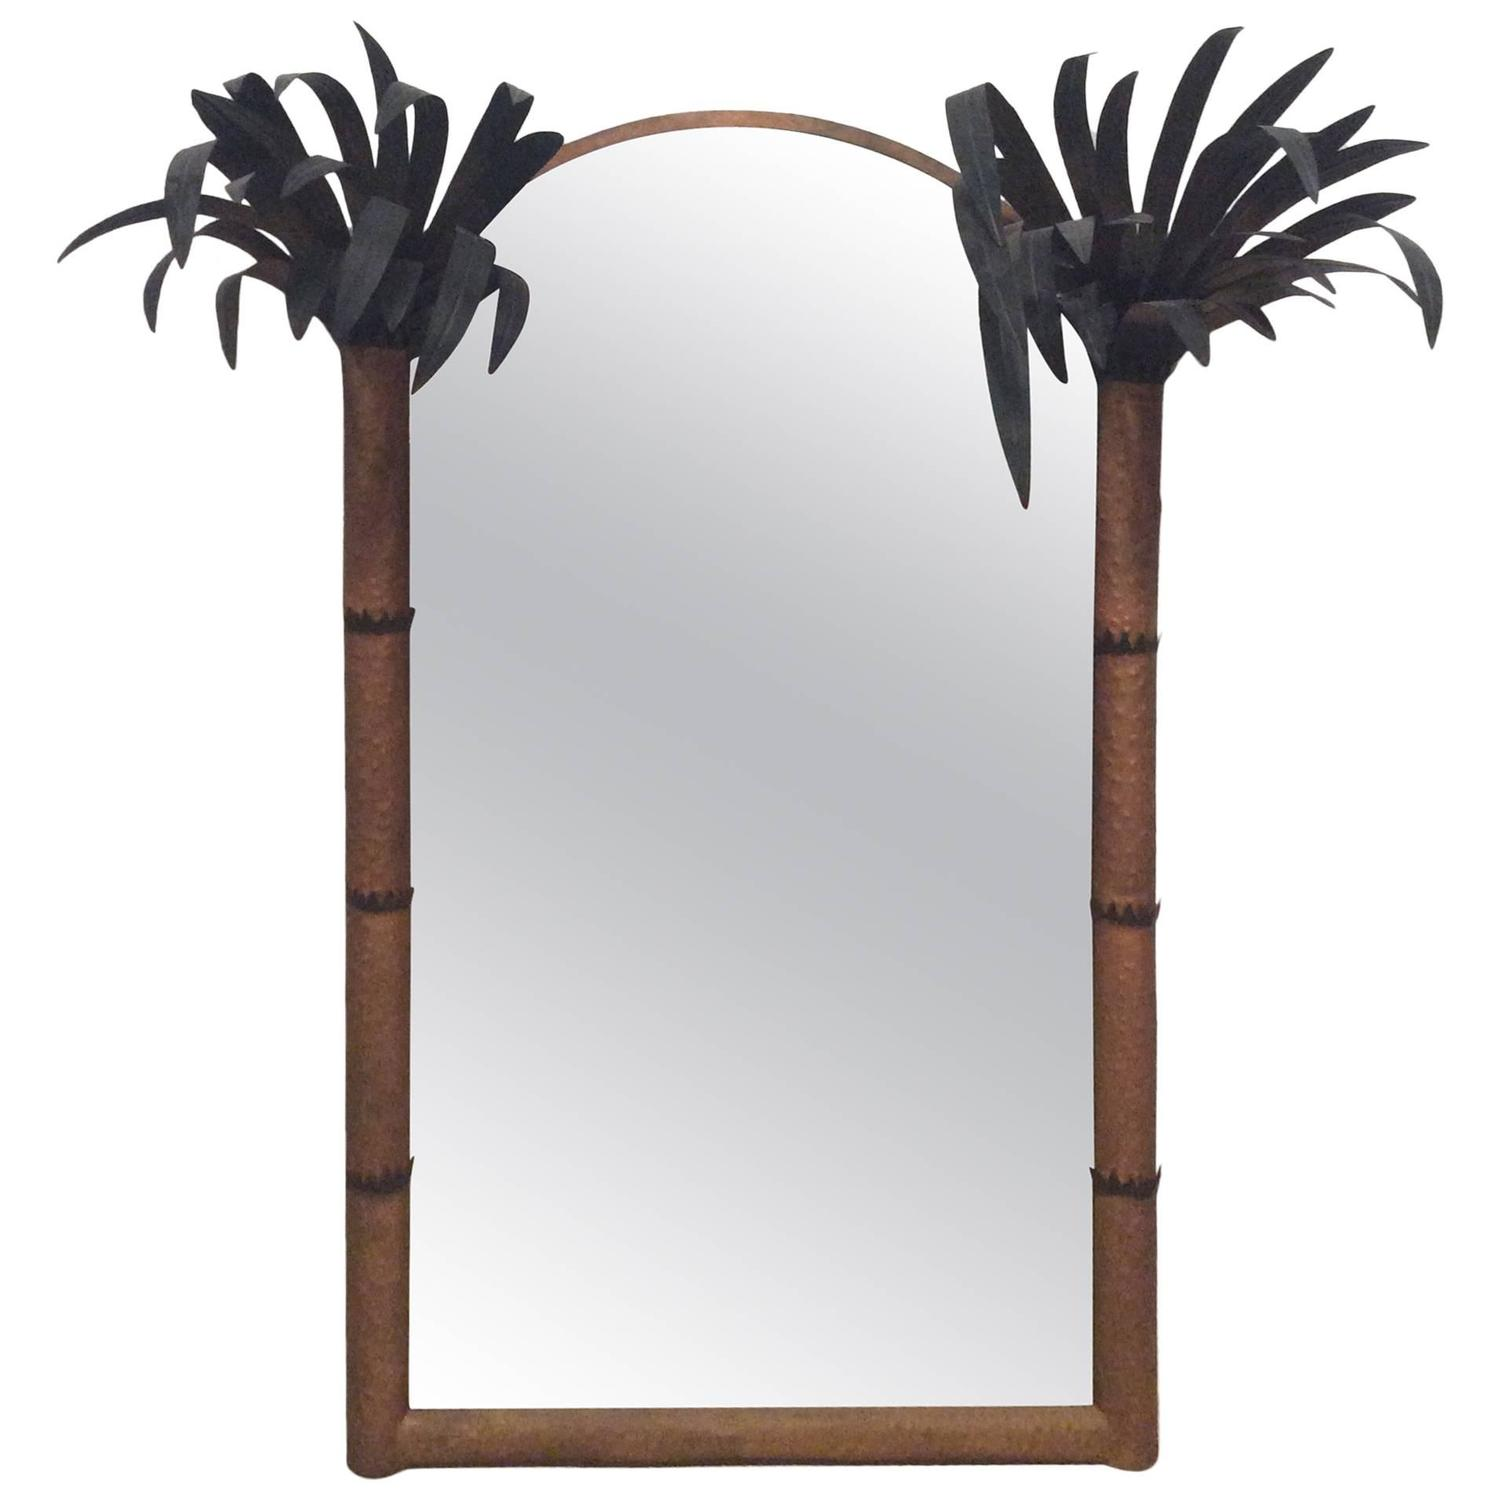 Arched gilt mirror at 1stdibs - Palm Beach Frond Leaf Wall Mirror Vintage Metal Tole Tropical Island Arched For Sale At 1stdibs